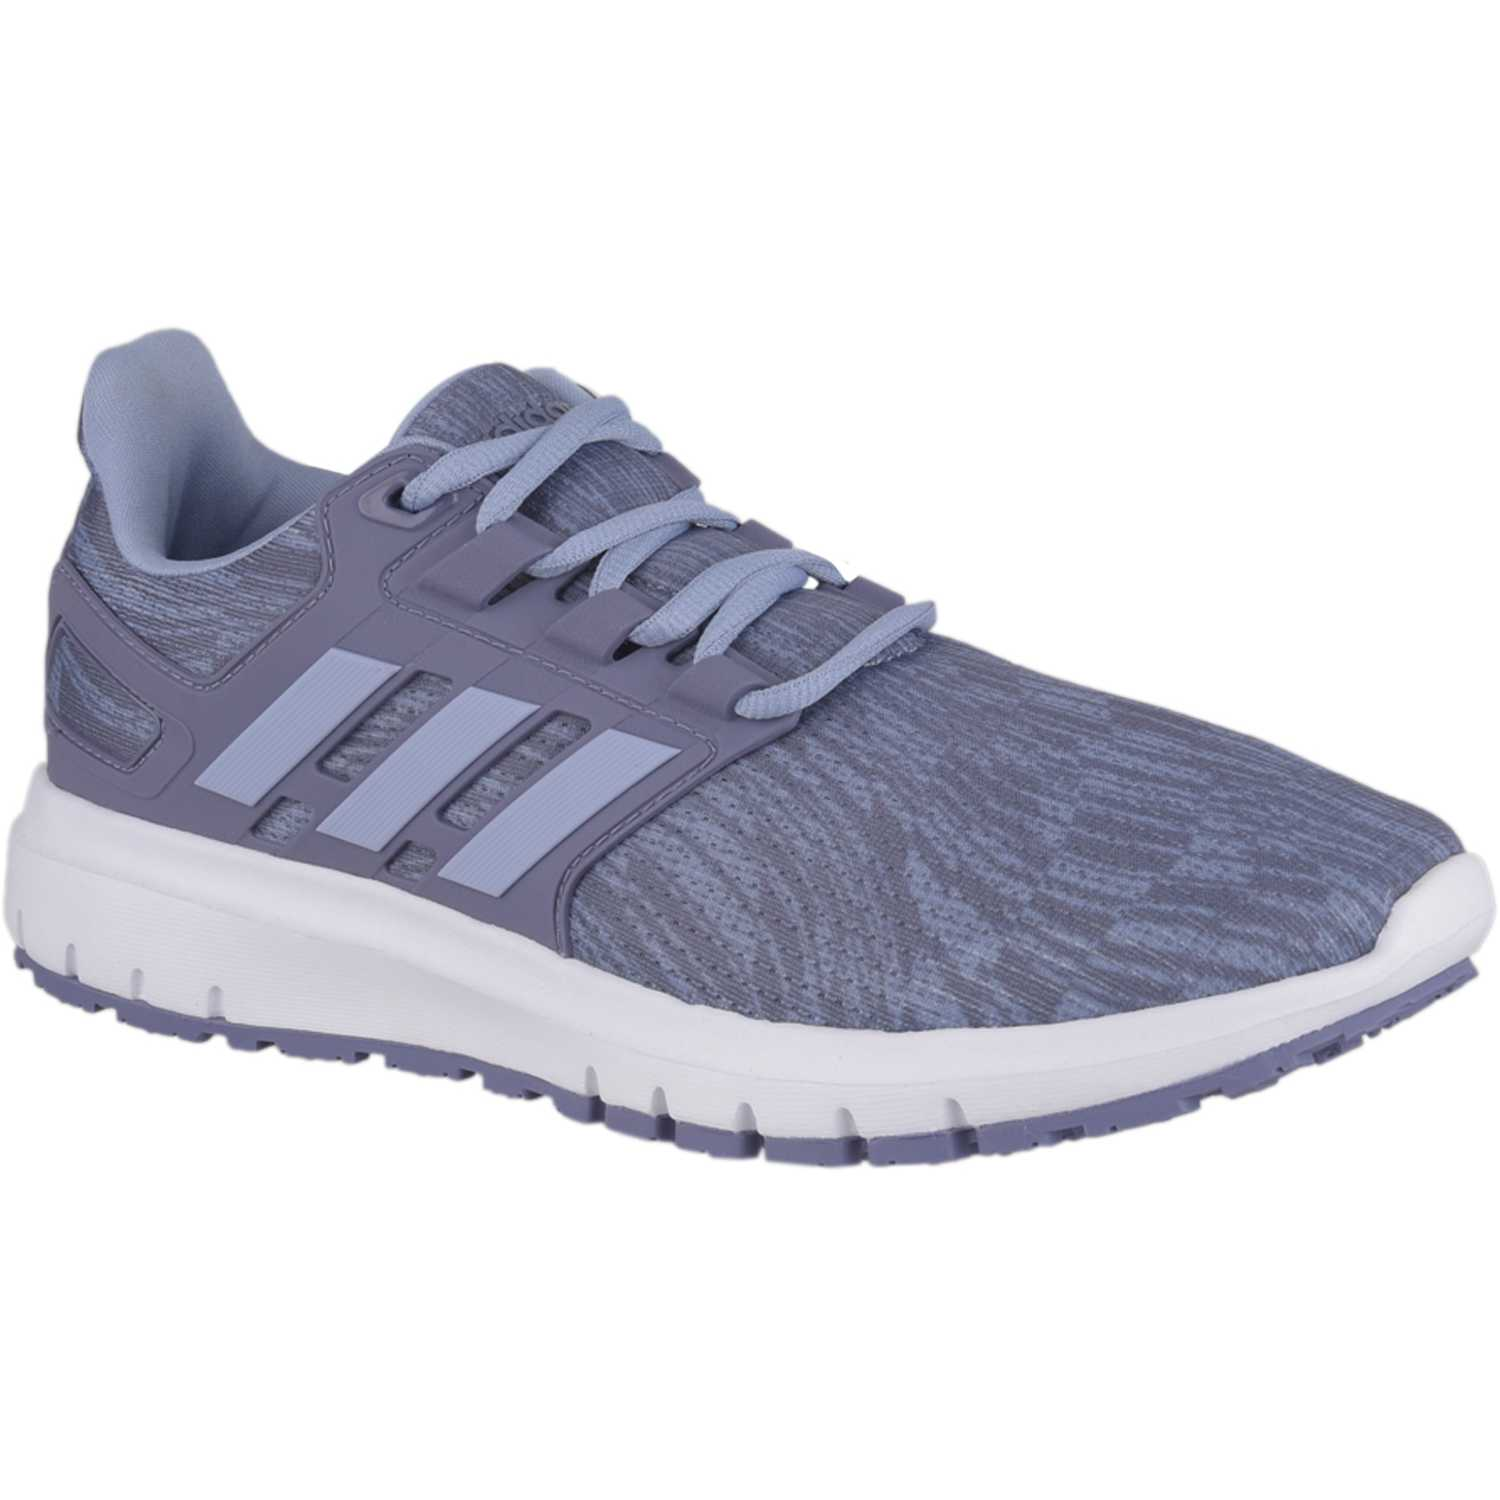 Adidas energy cloud 2 w Celeste / blanco Running en pista